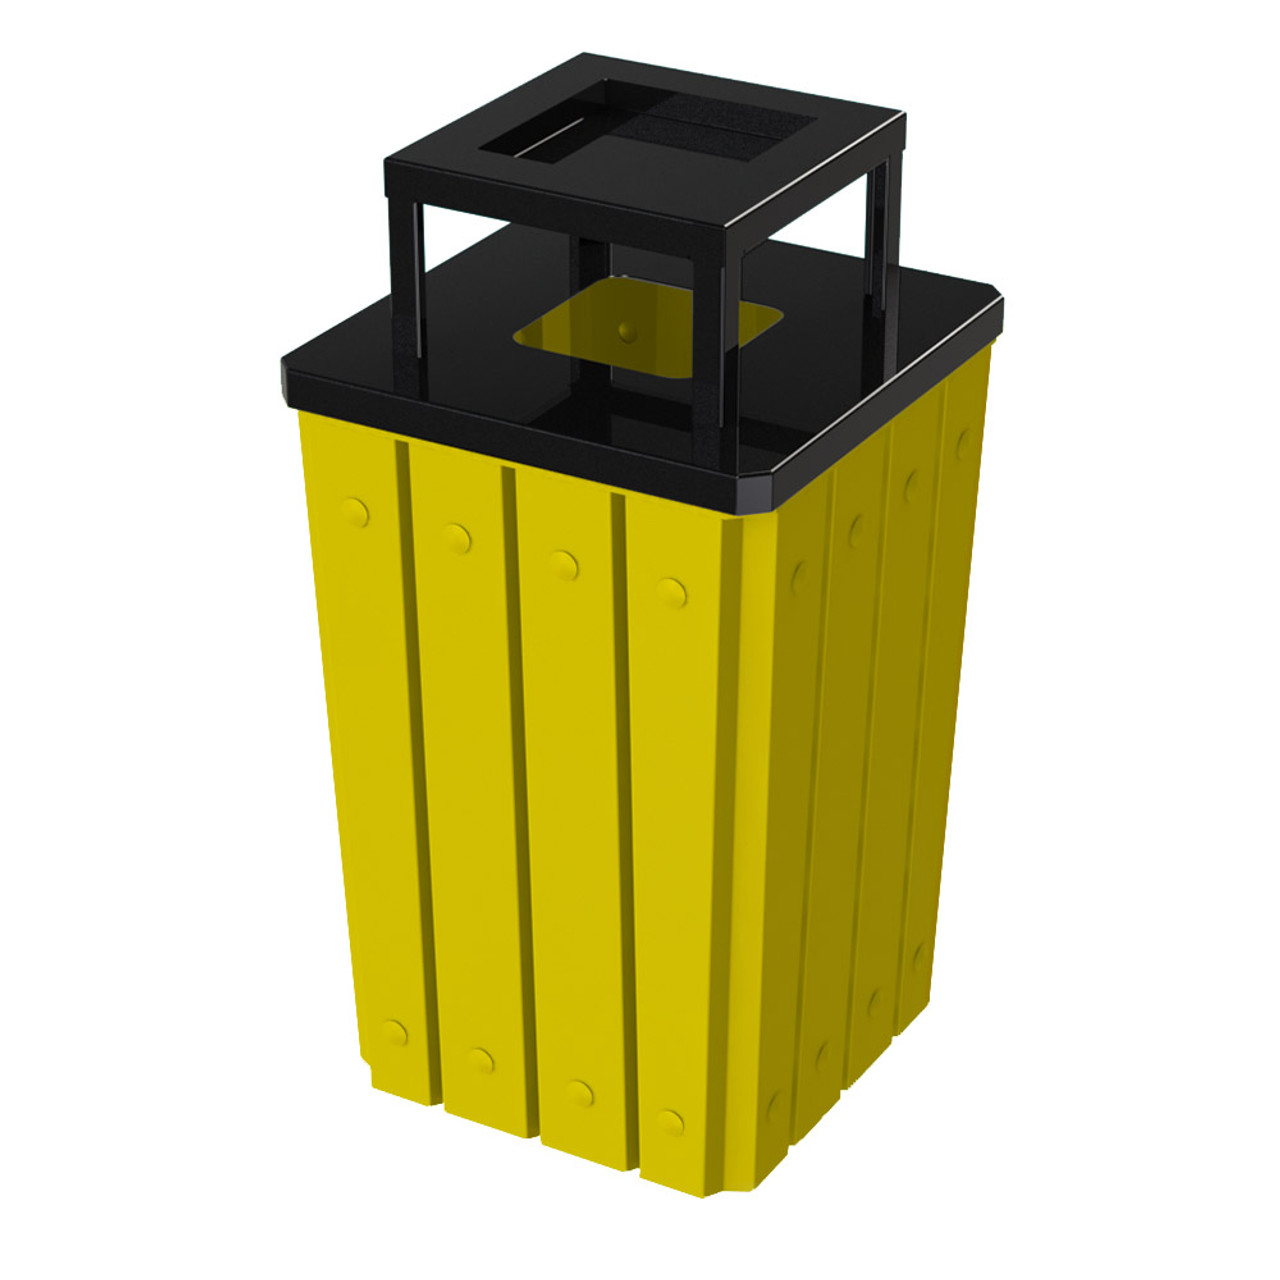 32 Gallon Kolor Can Heavy Duty Ash Trash Can with Liner S8295S (13 Colors, 3 Lid Options)